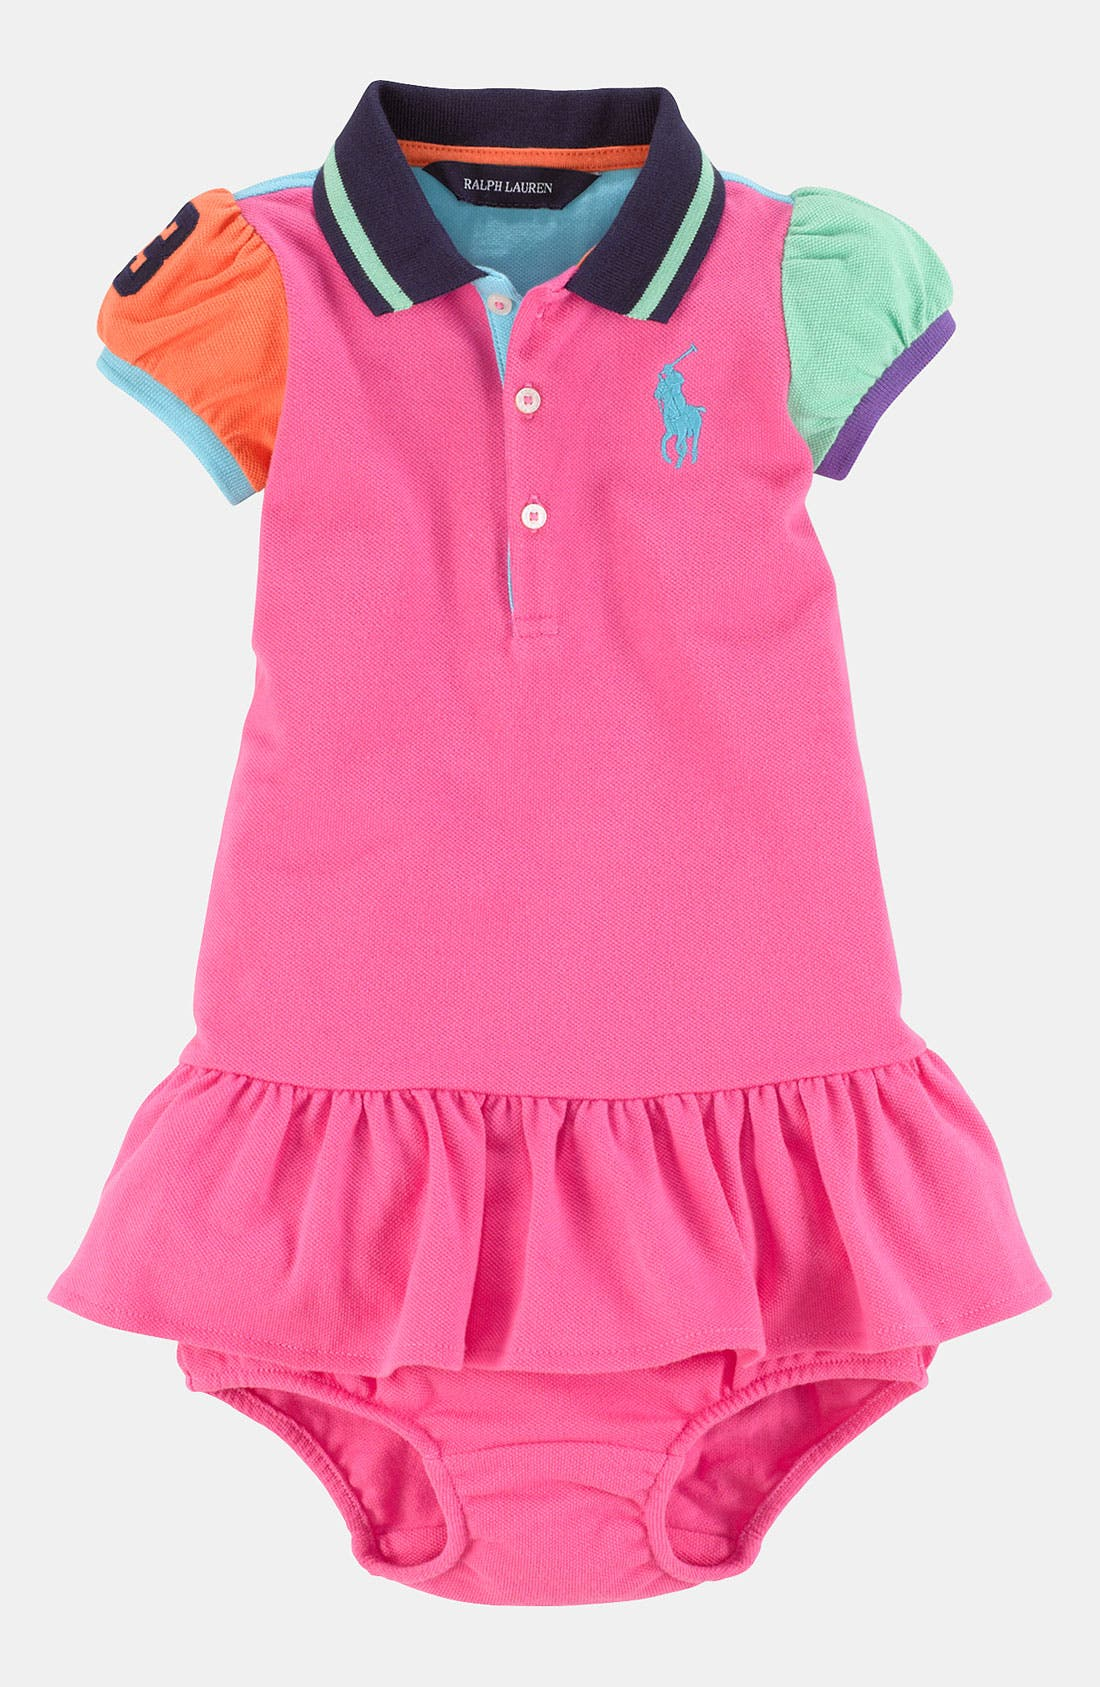 Main Image - Ralph Lauren Colorblock Dress & Bloomers (Infant)